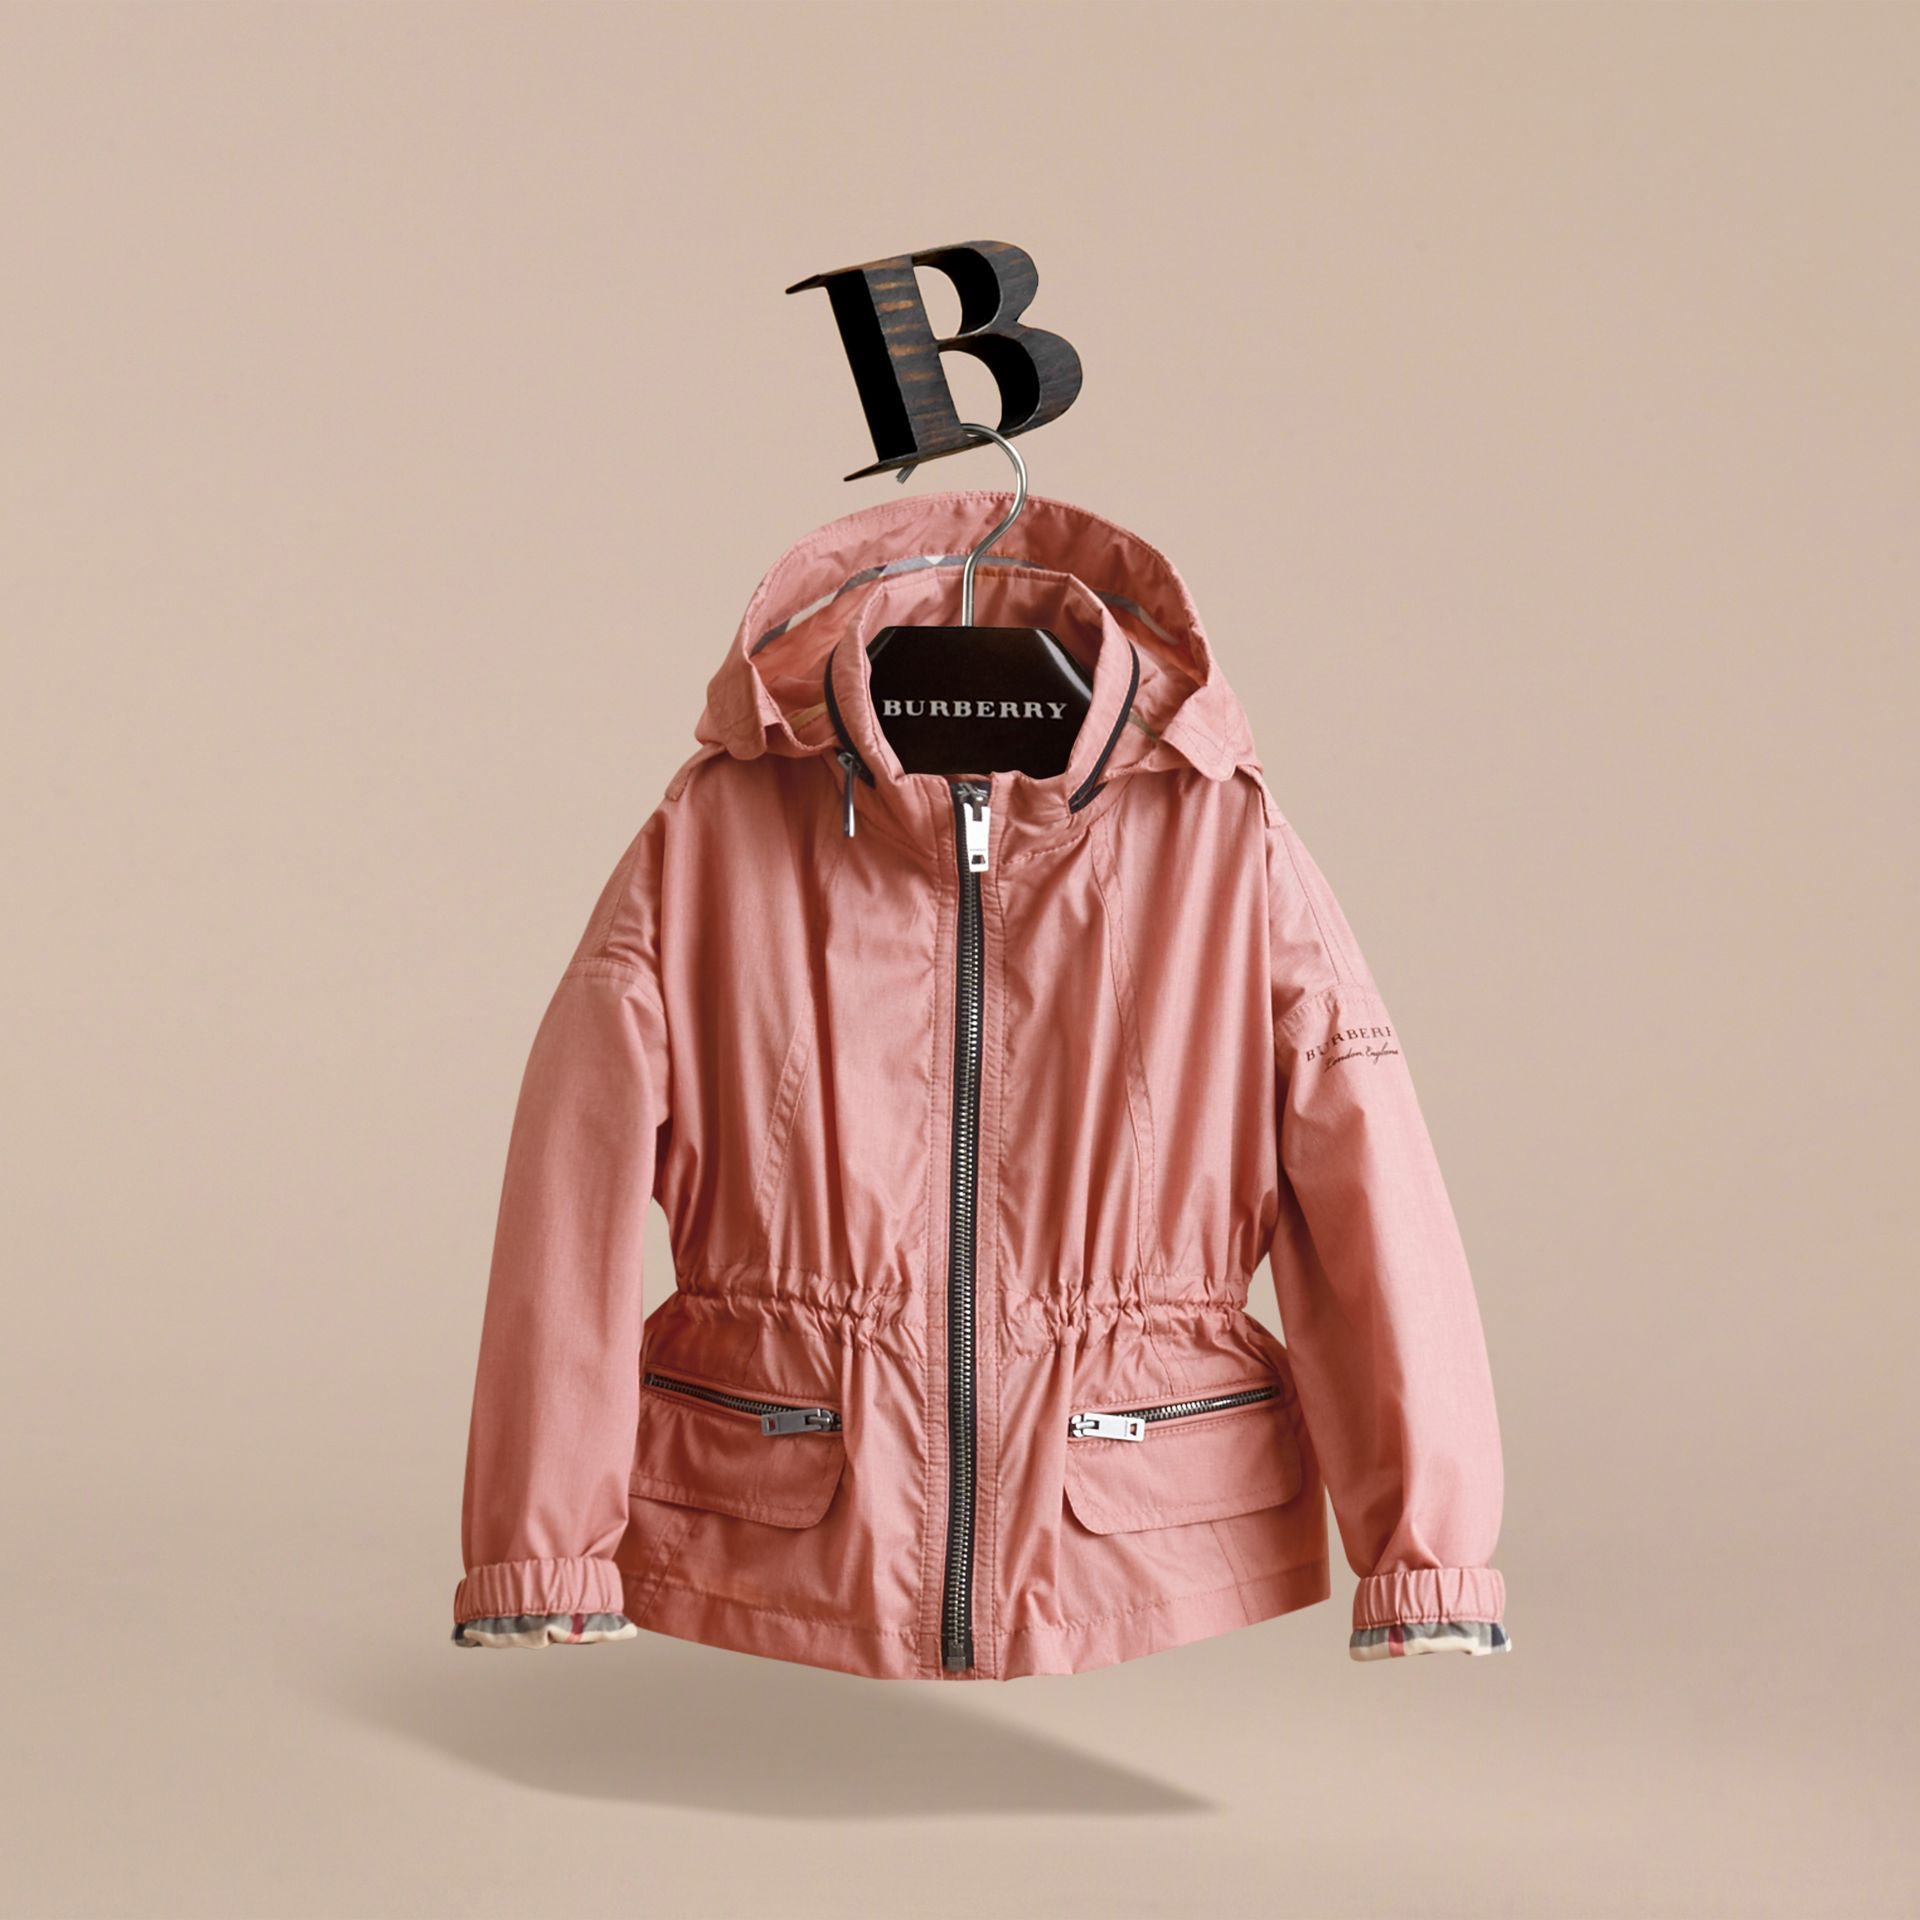 Veste imperméable avec détails check et capuche repliable (Rose Pink) - Fille | Burberry - photo de la galerie 3